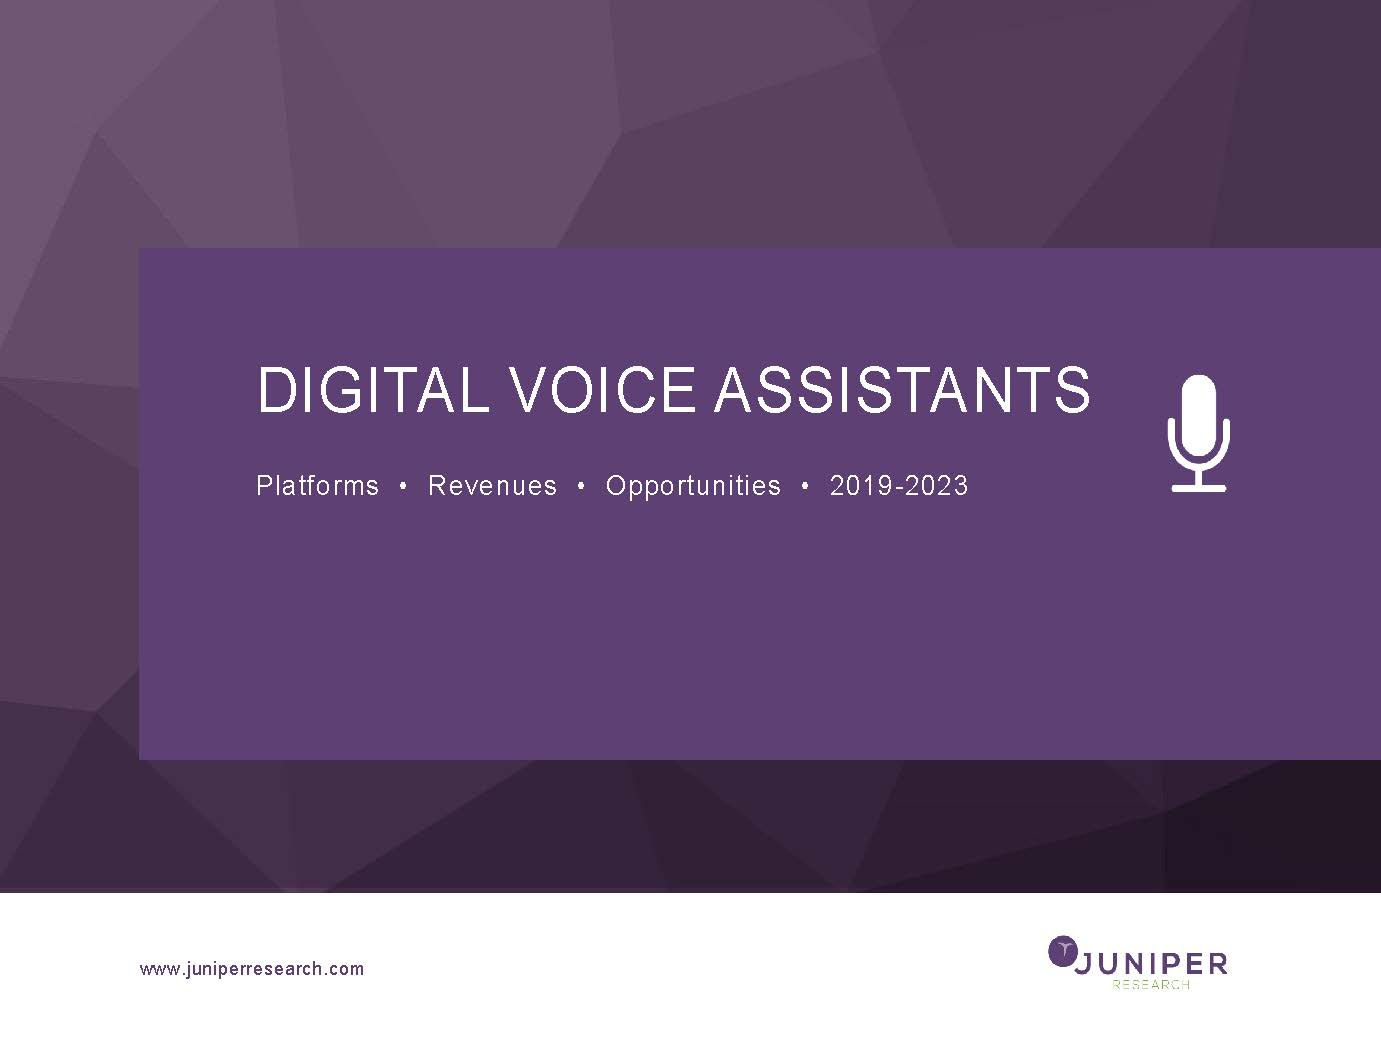 Digital Voice Assistants